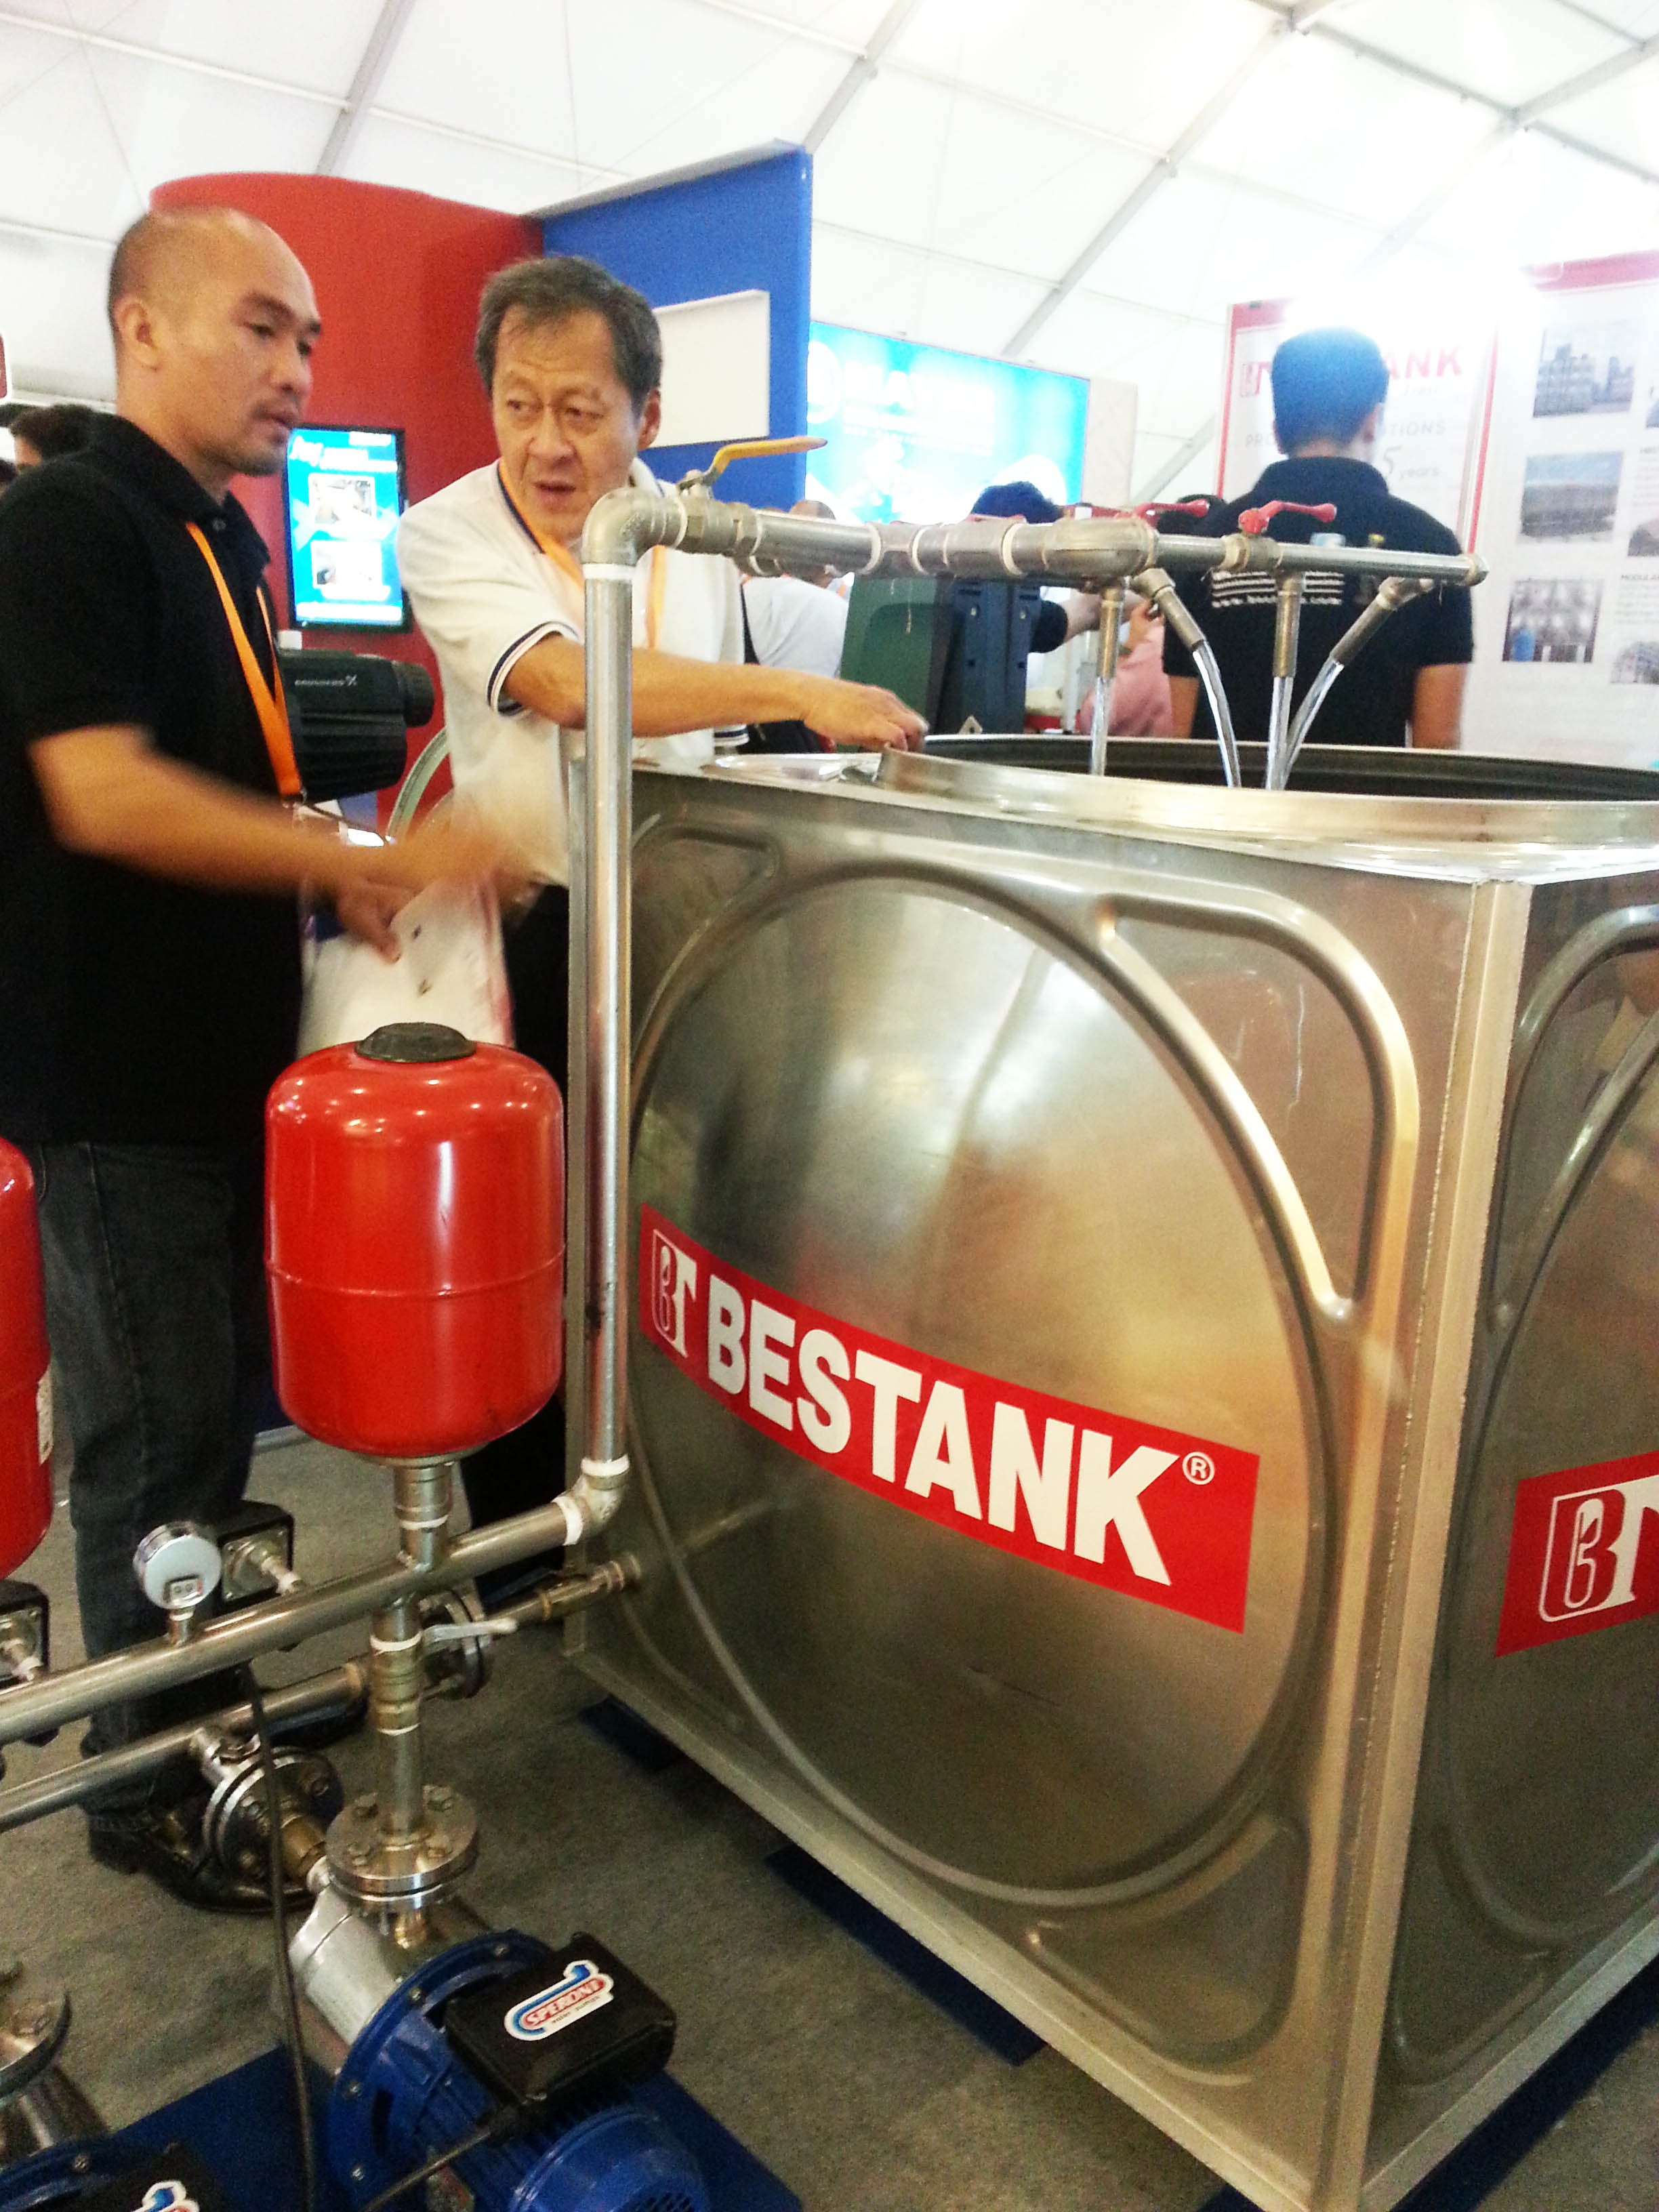 Bestank joins Worldbex 2015!